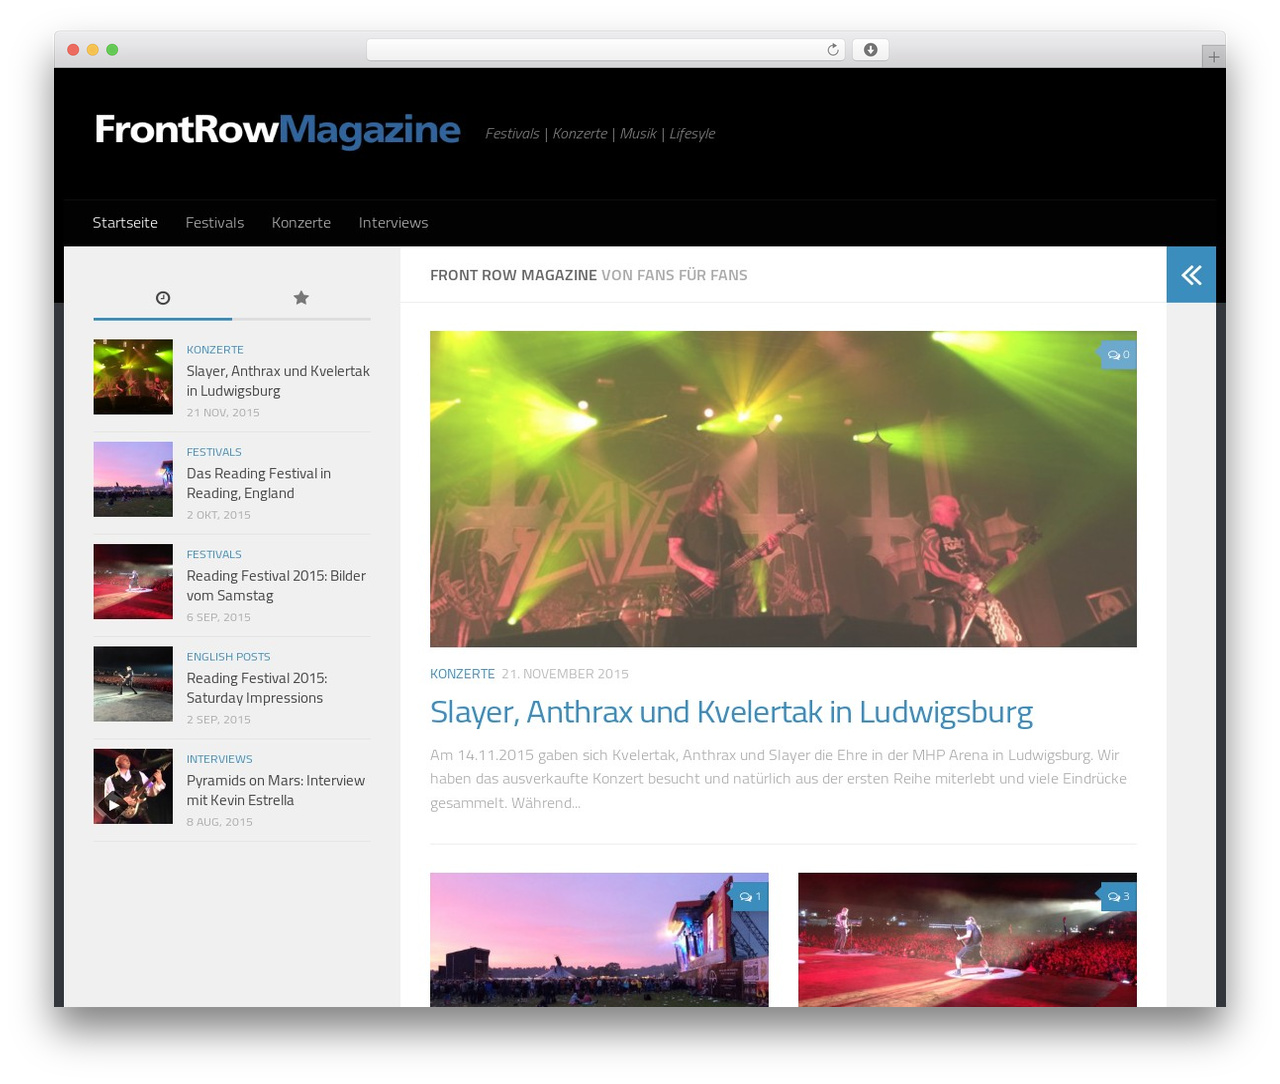 Musik wordpress theme free download by carolina nymark page 4.